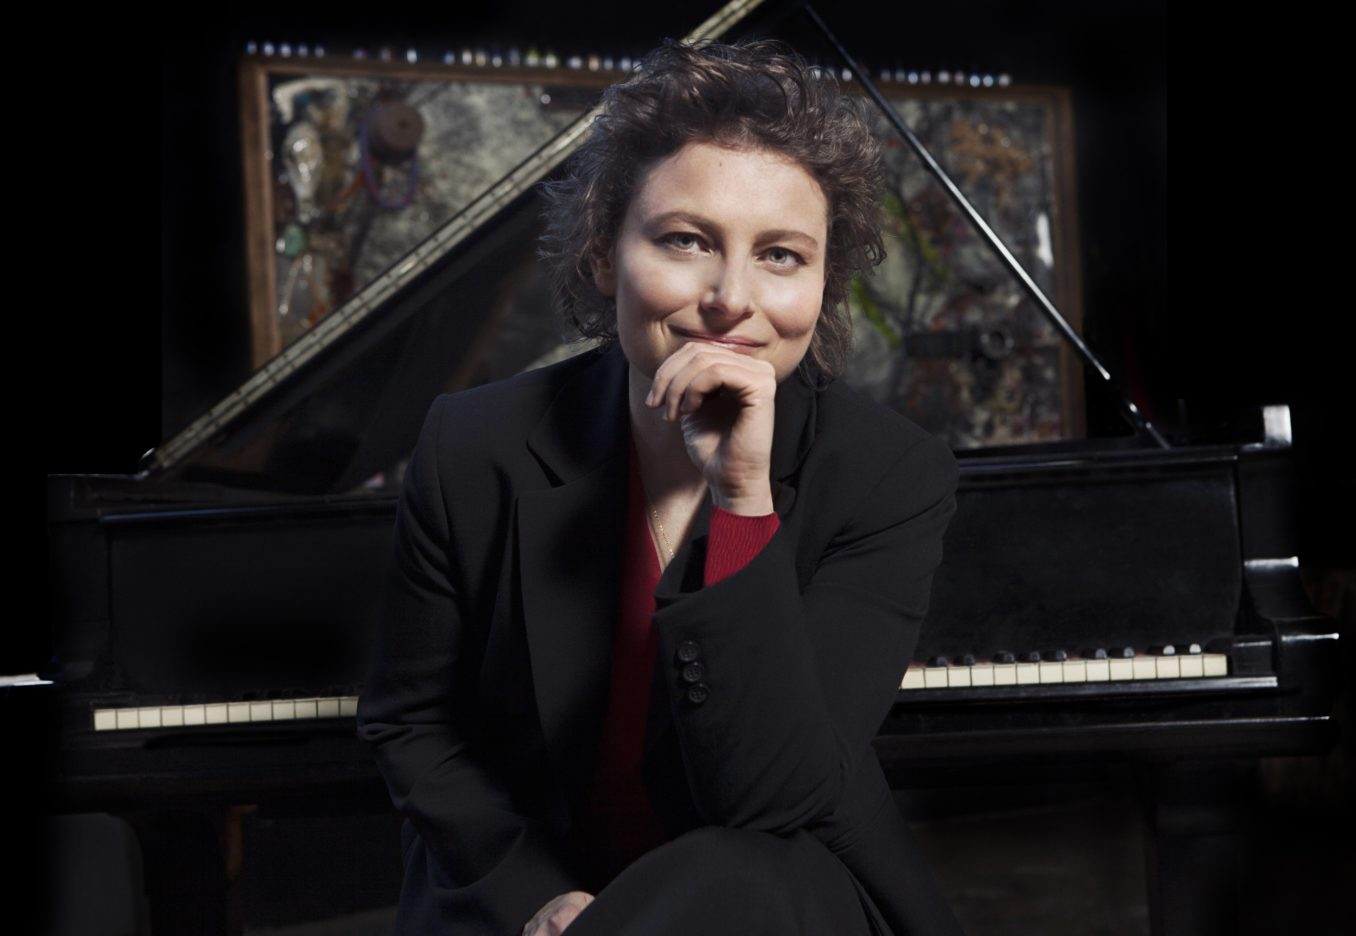 Pianist Yael Weiss premieres '32 Bright Clouds: Beethoven Conversations Around the World' at Strathmore on January 24. Photo by Lisa-Marie Mazzucco.